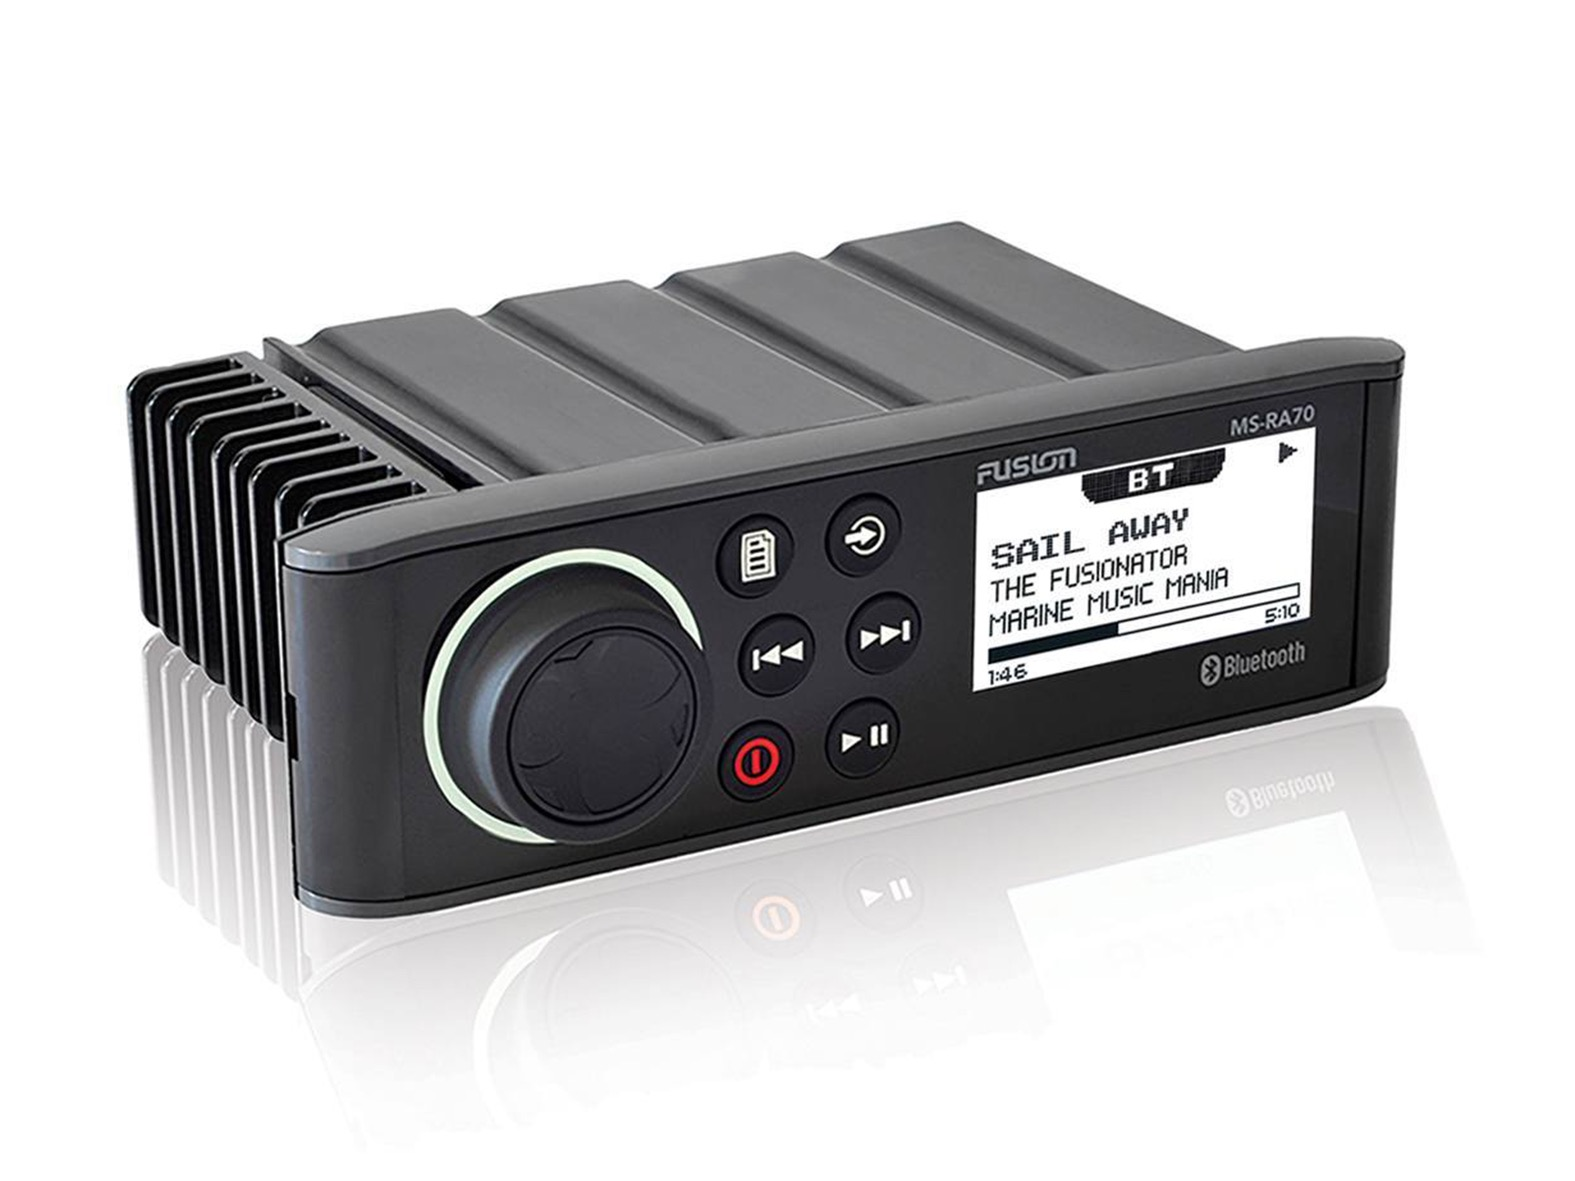 Audio player with Bluetooth (Eagle BR/BRX) - Electronics and other